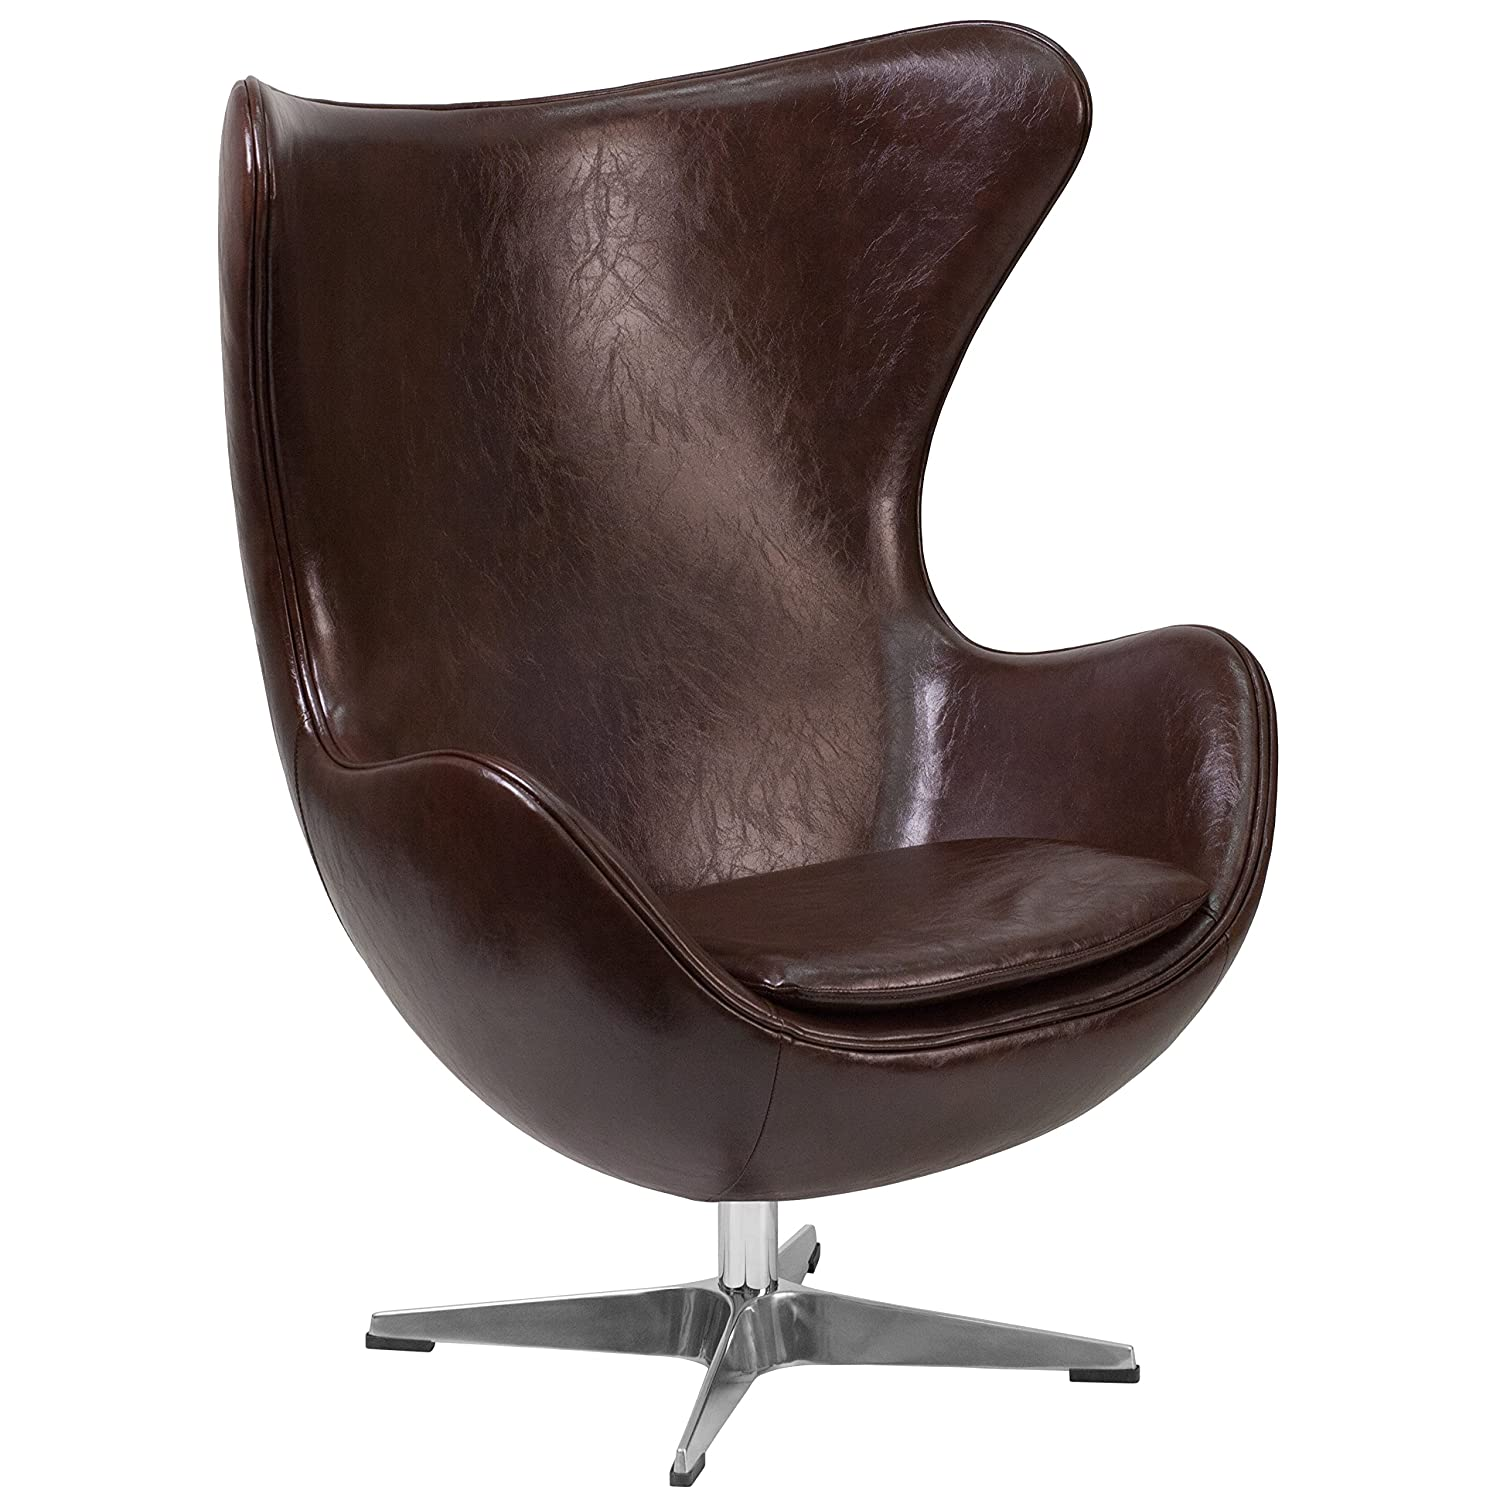 The Egg Chair.Flash Furniture Brown Leather Egg Chair With Tilt Lock Mechanism